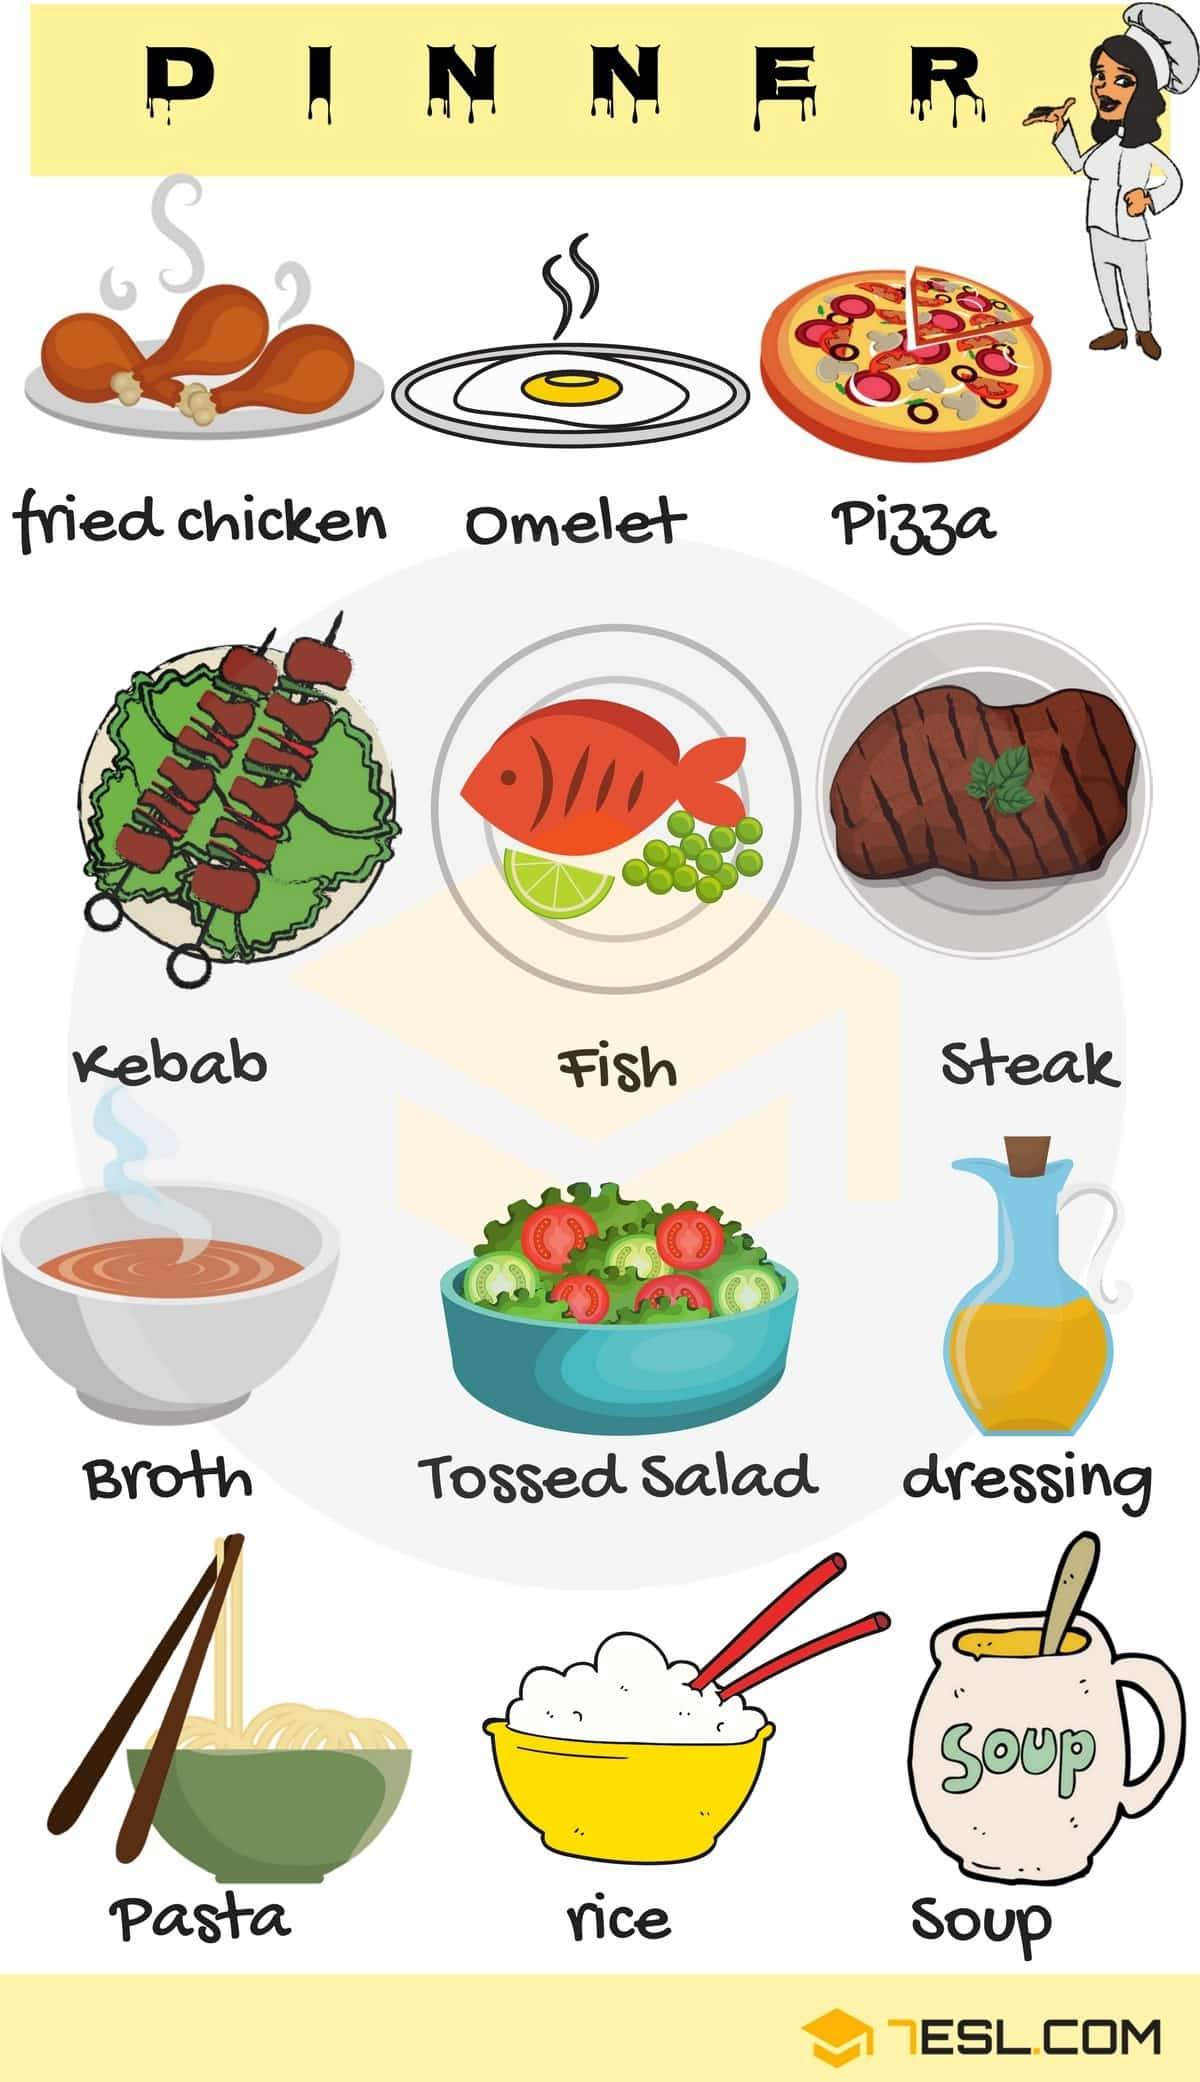 Dinner Food List Useful List Of Dinner Foods With